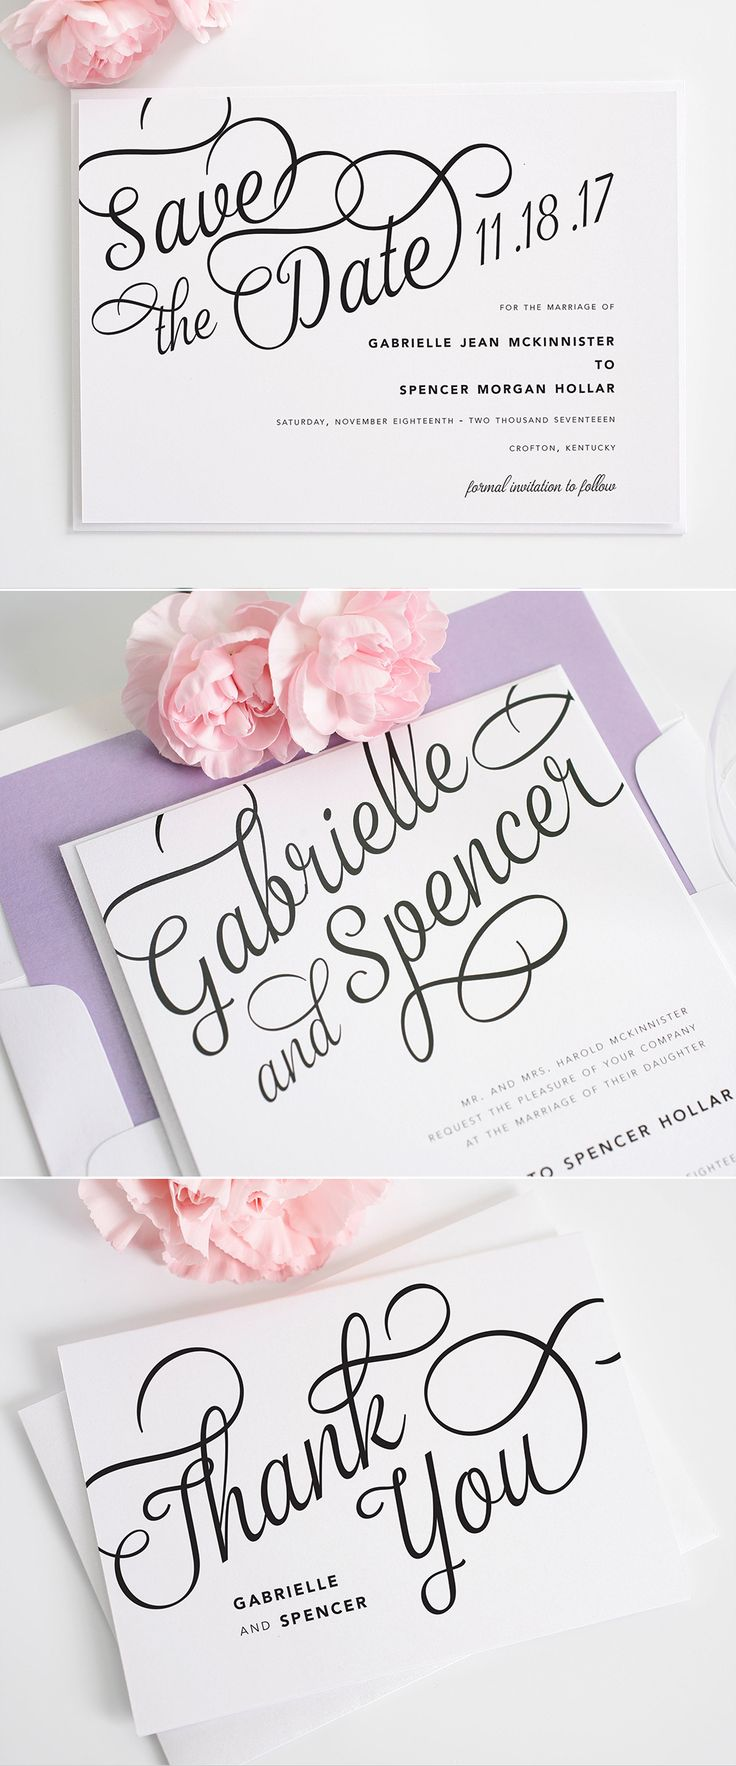 Beautiful script wedding invitations with matching save the dates and thank you cards from Shine Wedding Invitations. http://www.shineweddinginvitations.com/wedding-invitations/statement-script-wedding-invitations